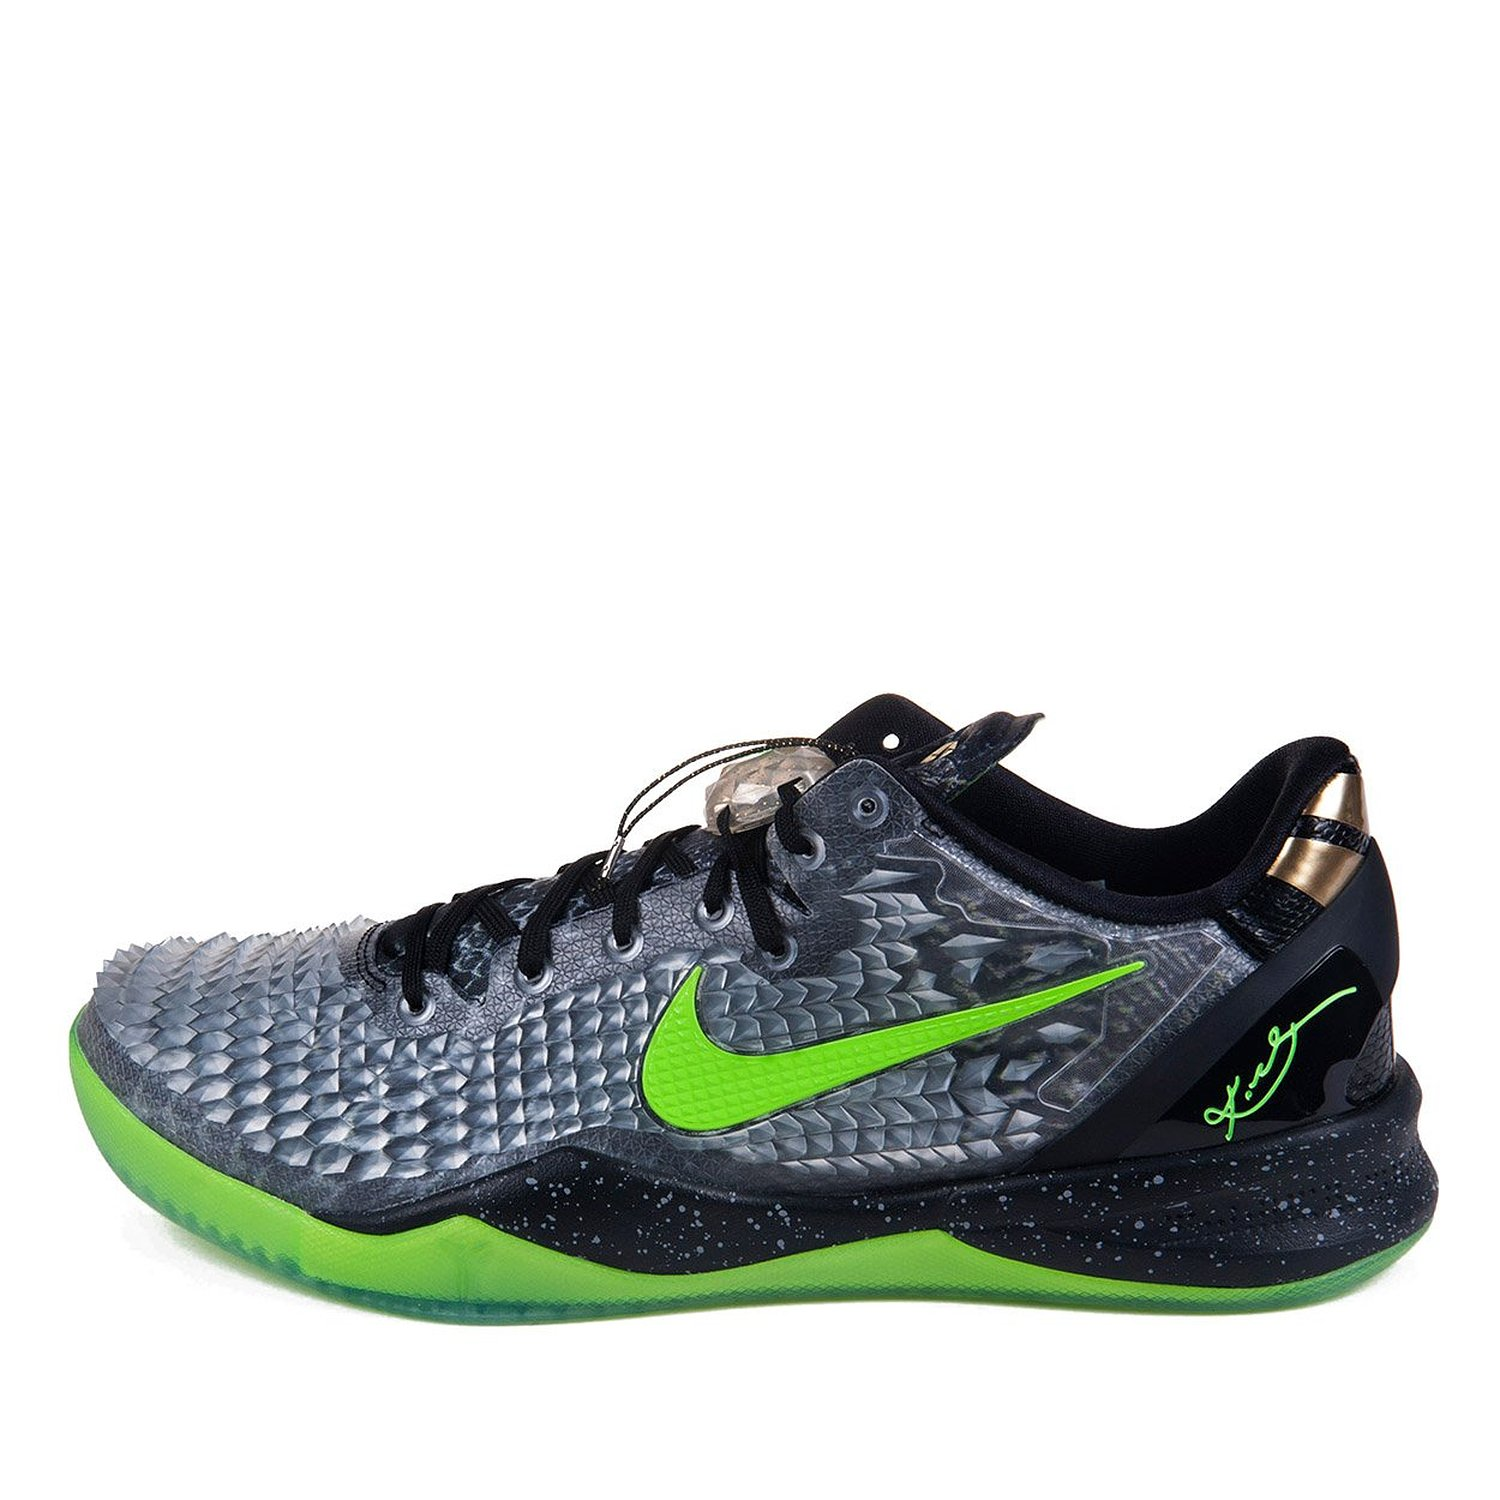 "Nike Mens Kobe 8 System SS ""Christmas"" Synthetic Basketball Shoes"